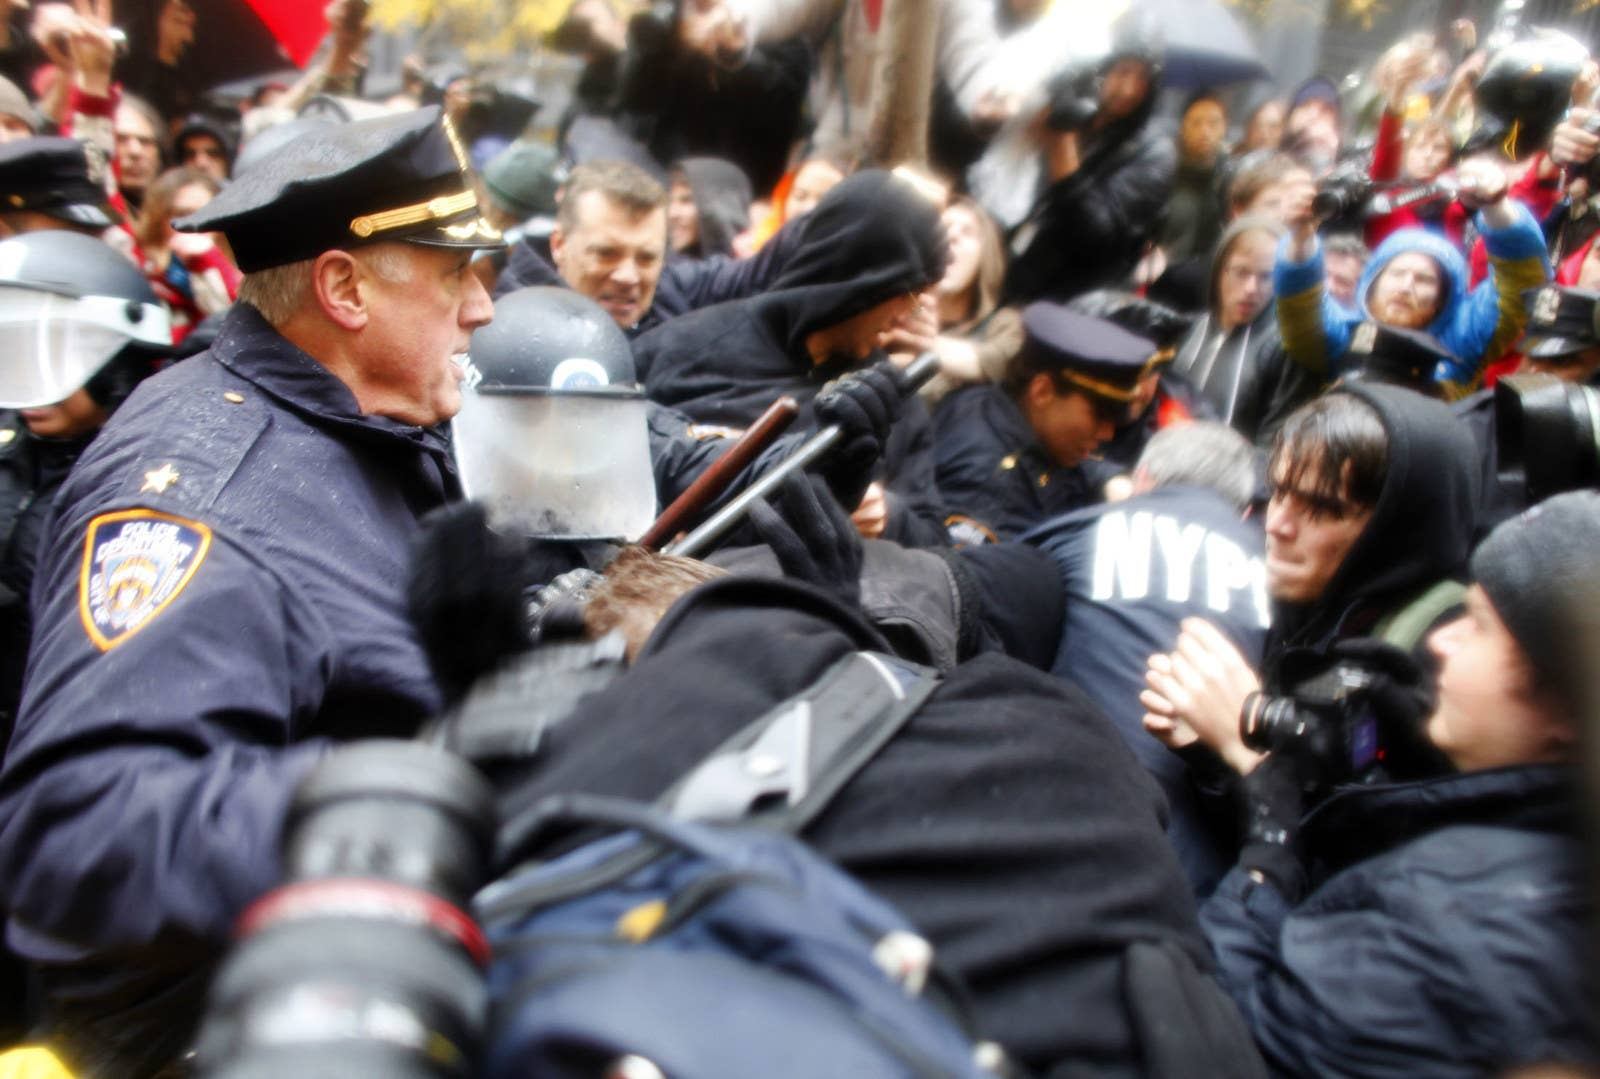 Occupy Wall Street protesters clash with police in Zuccotti Park on Nov. 17, 2011.